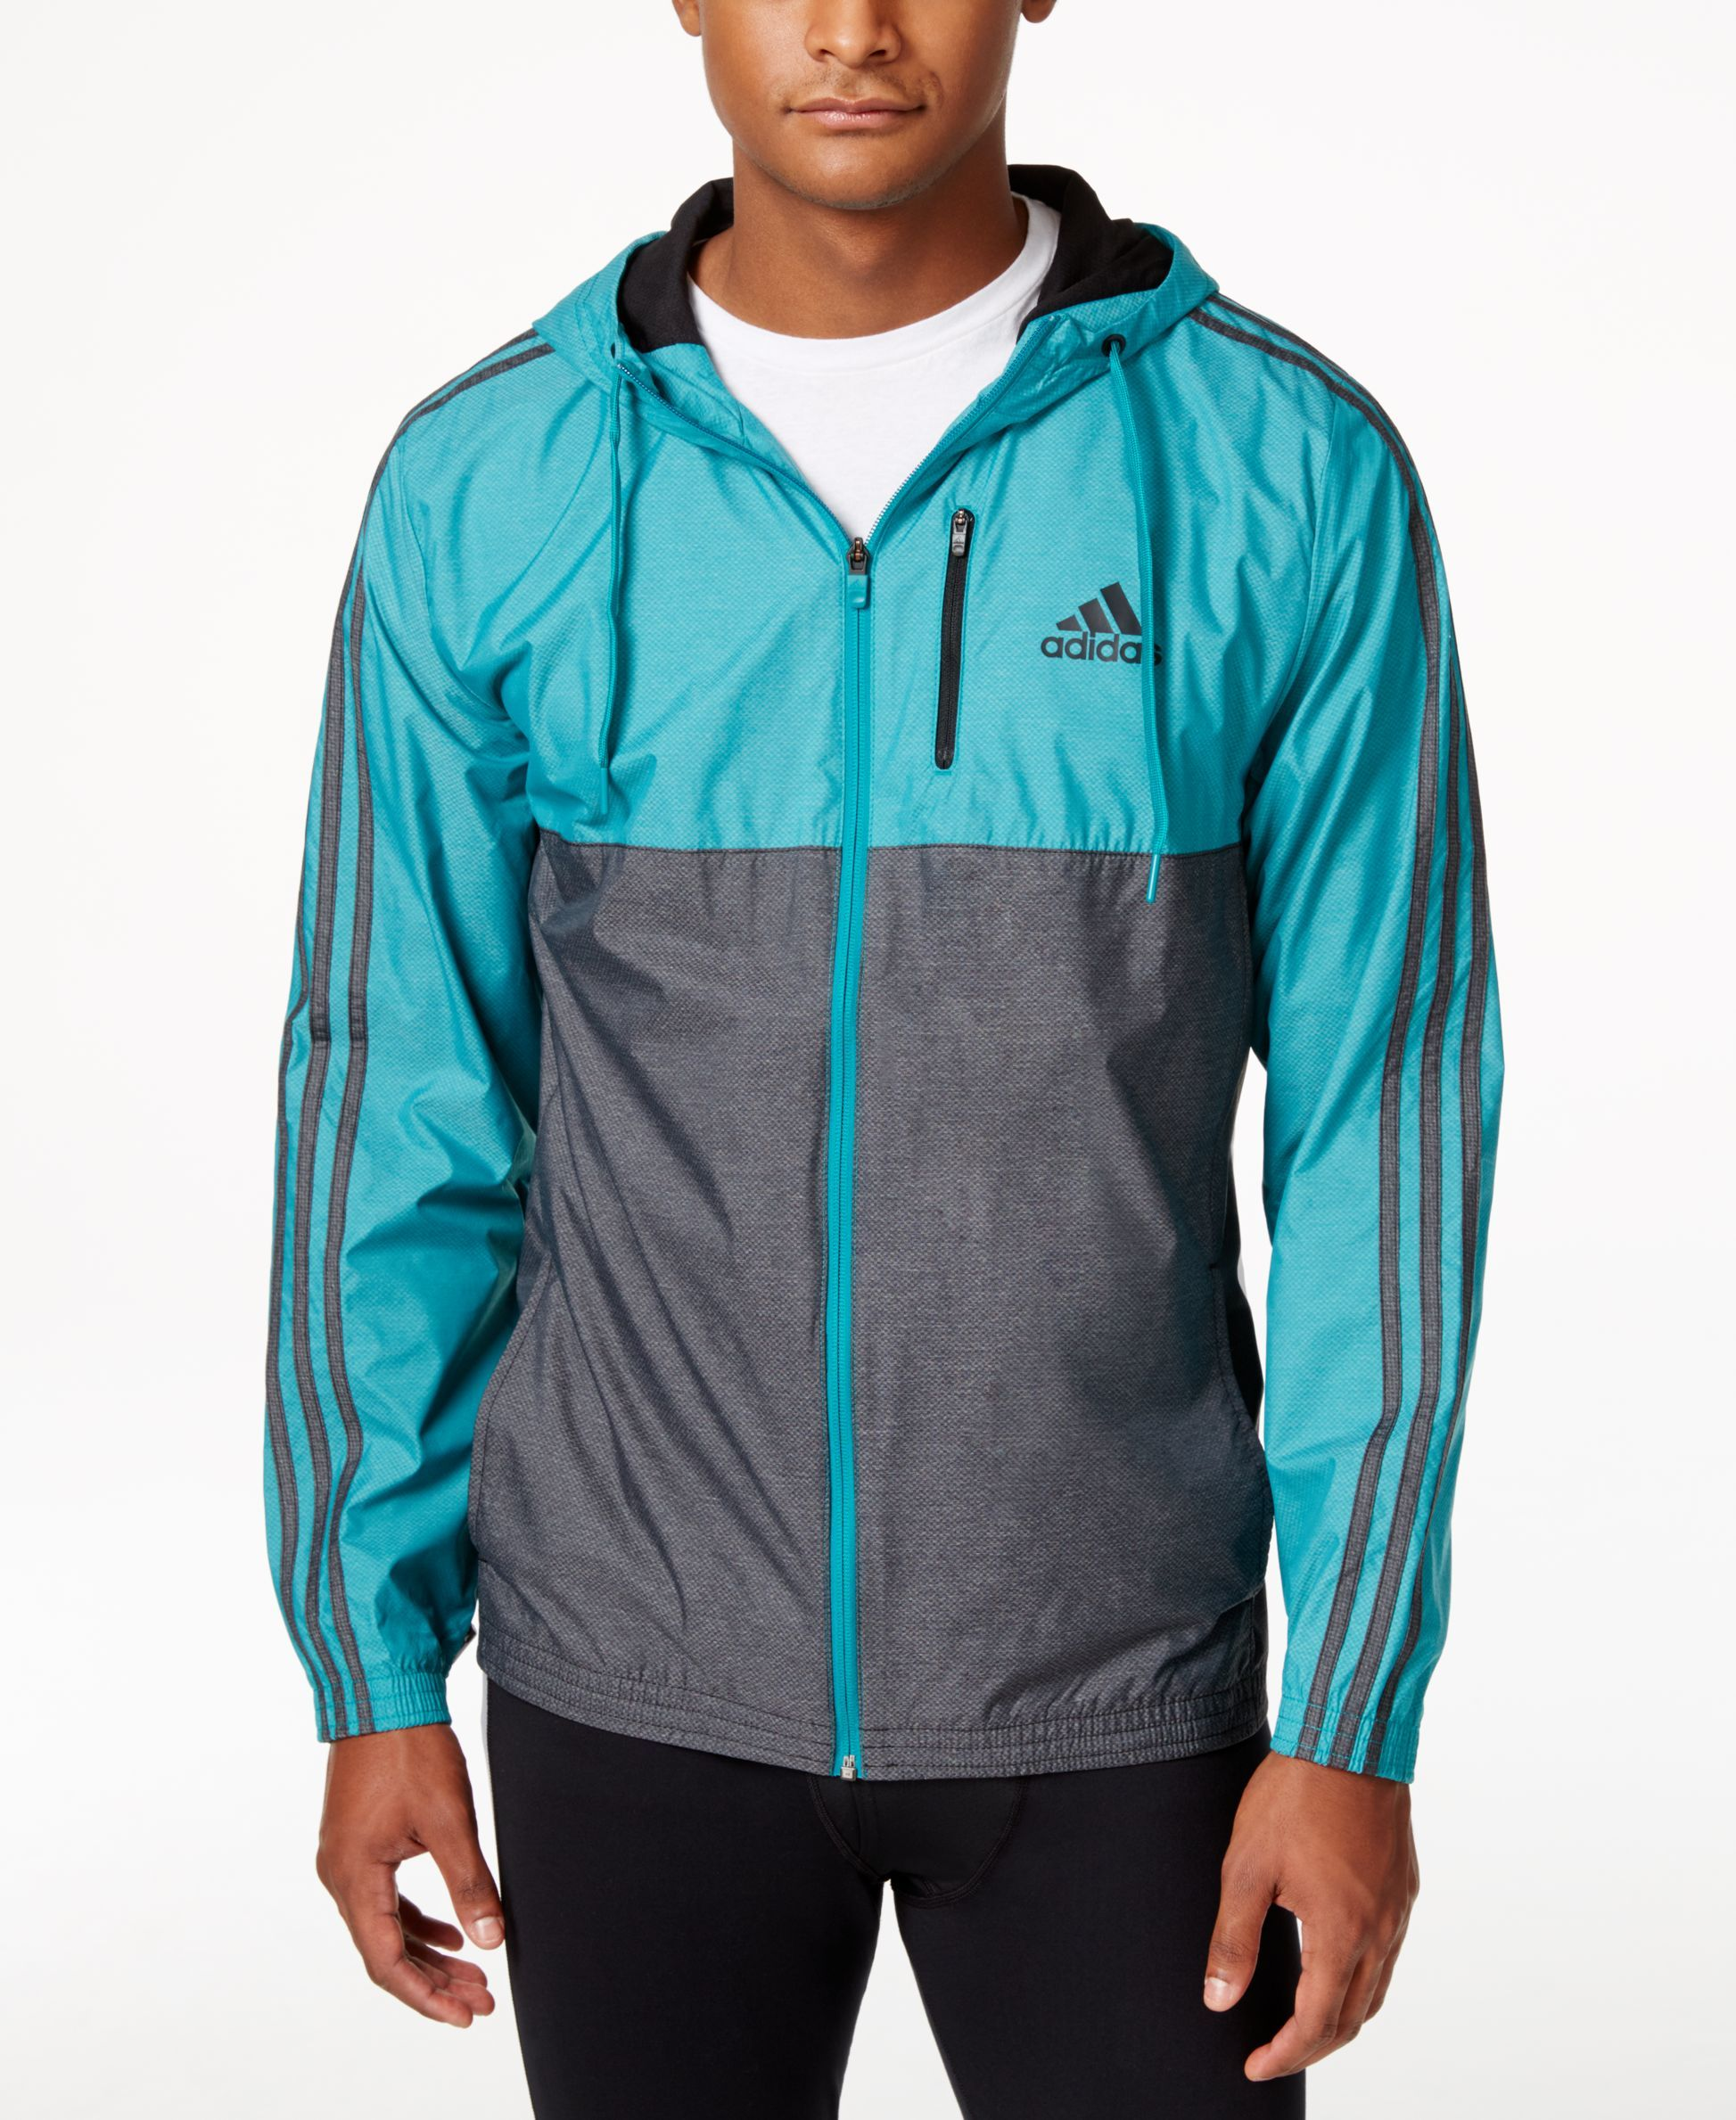 bc15d247509b adidas Men s Full-Zip Essential Woven Jacket Adidas Hoodie Mens, Adidas  Men, Adidas